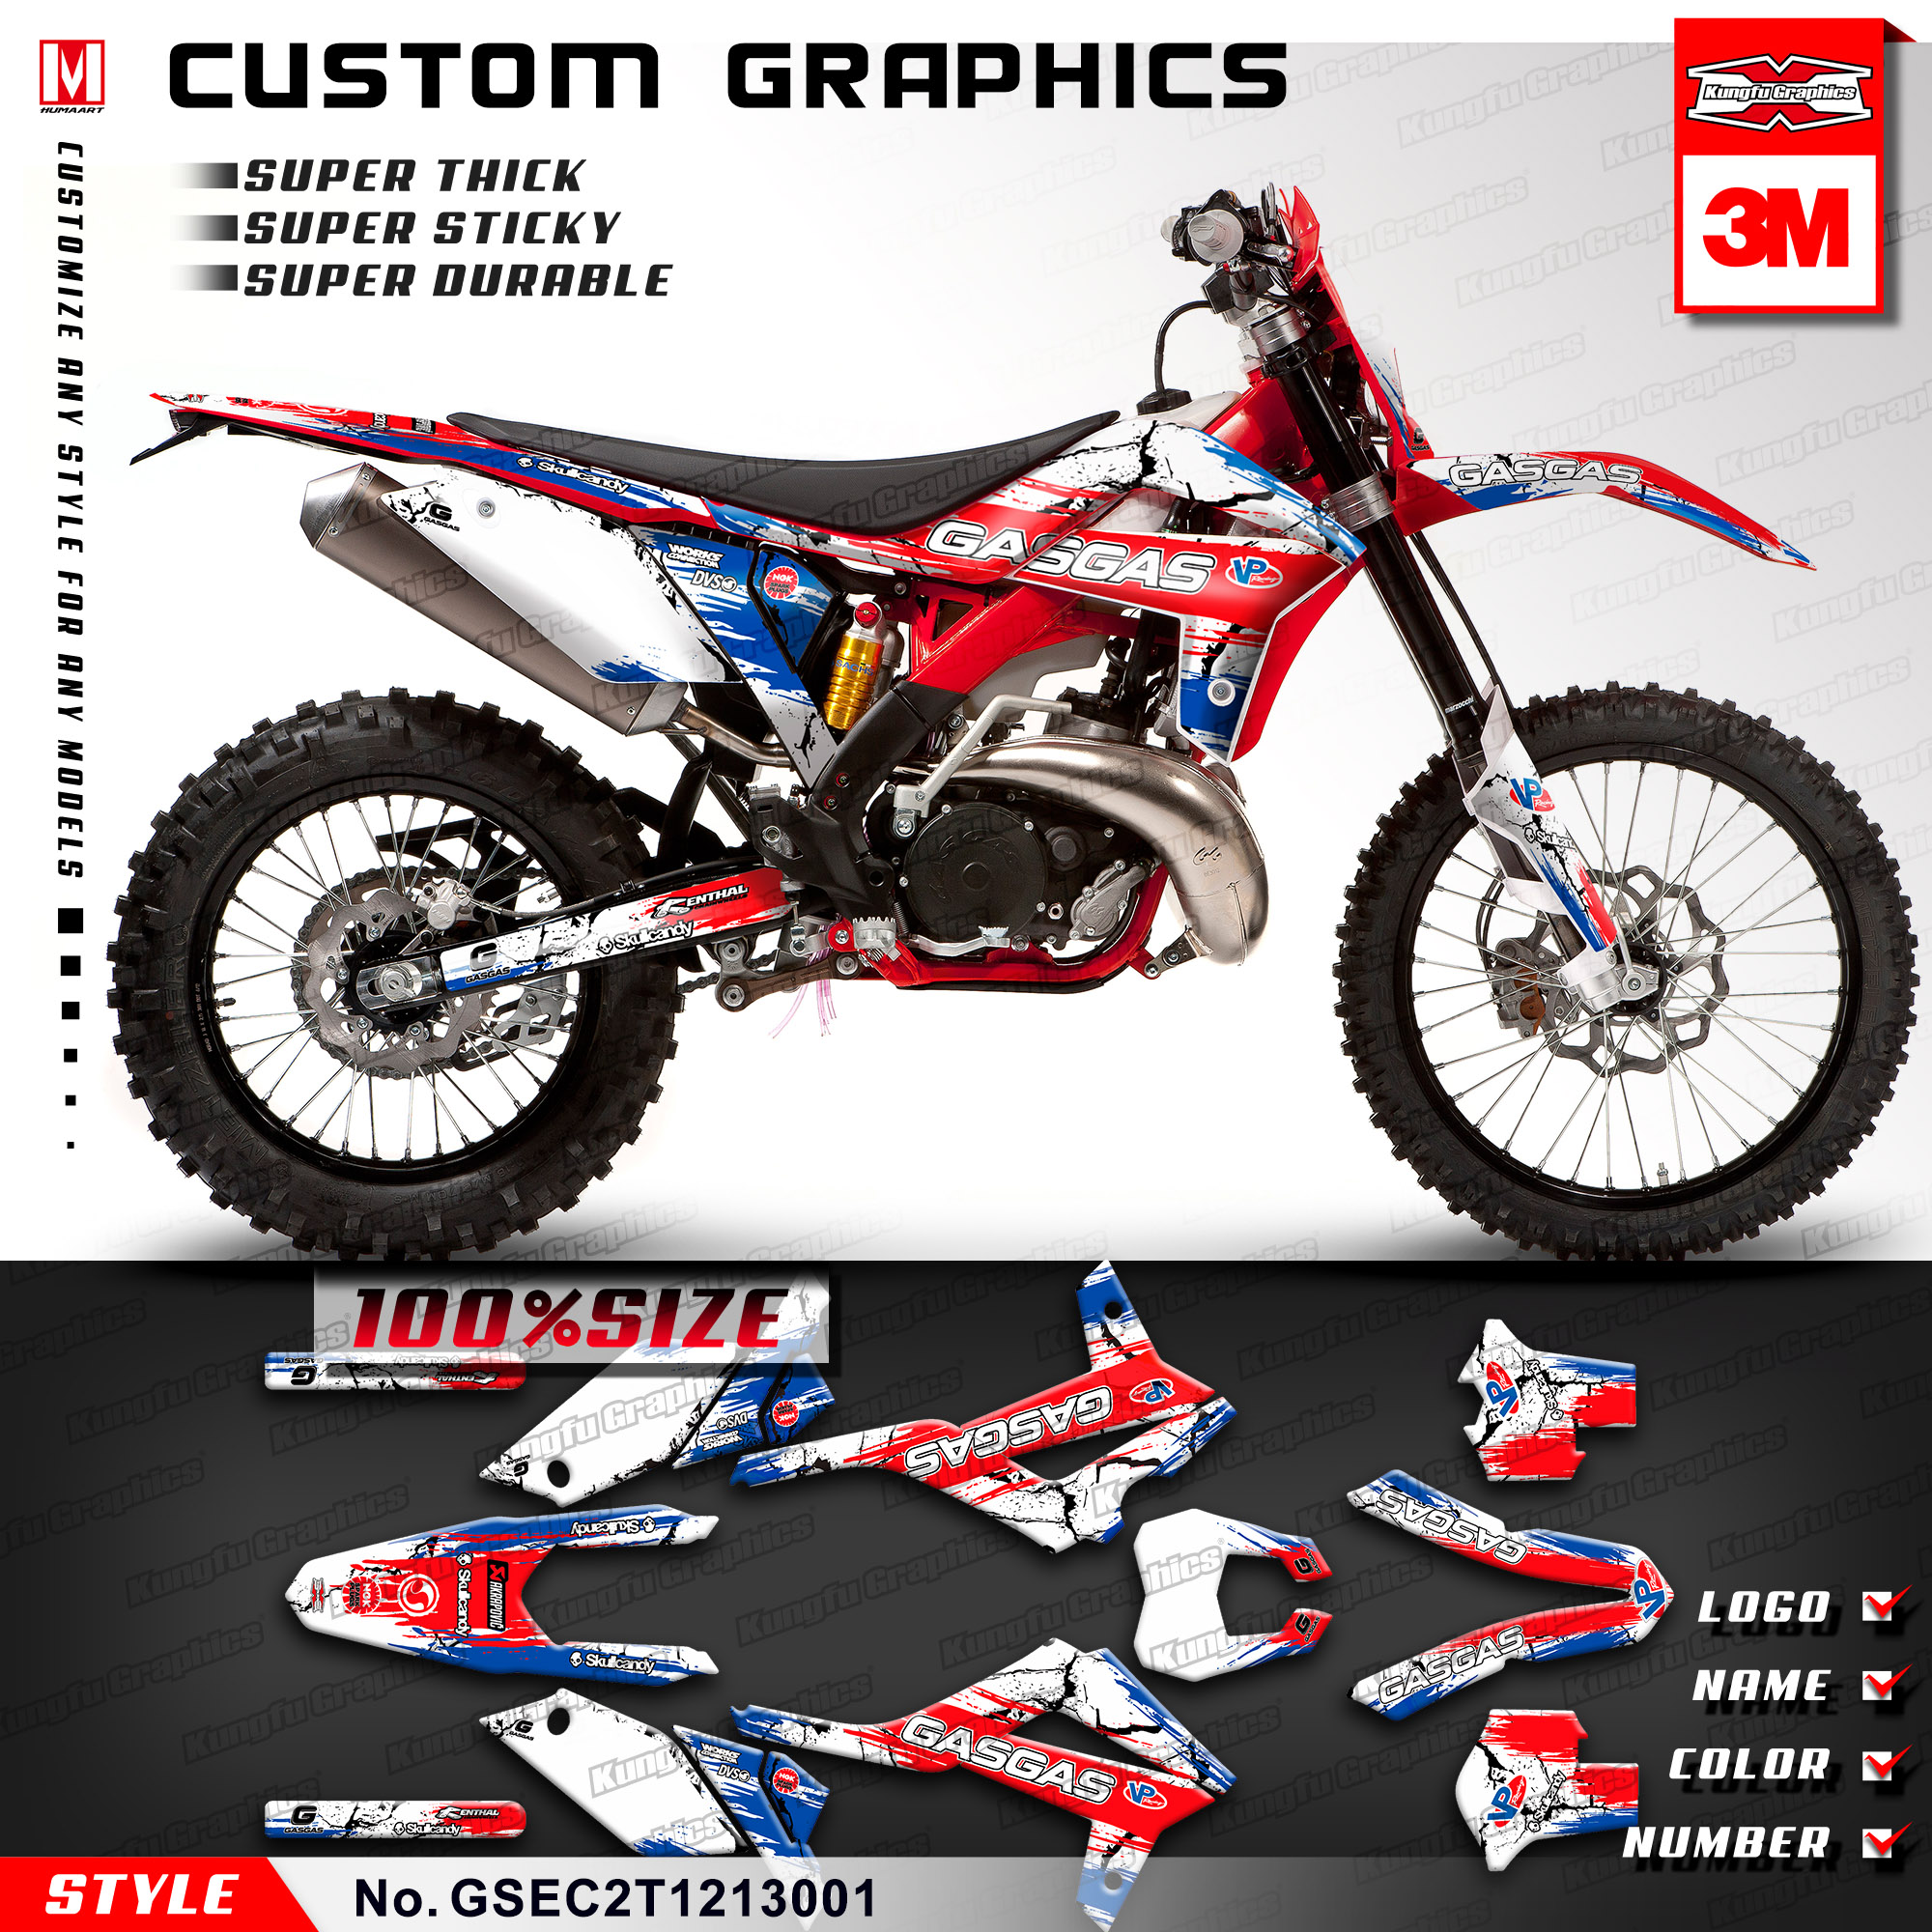 Kungfu graphics custom stickers for gas gas ec 125 200 250 300 e guillaume replica racing 2t 2012 2013 style no gsec2t1213001 in decals stickers from